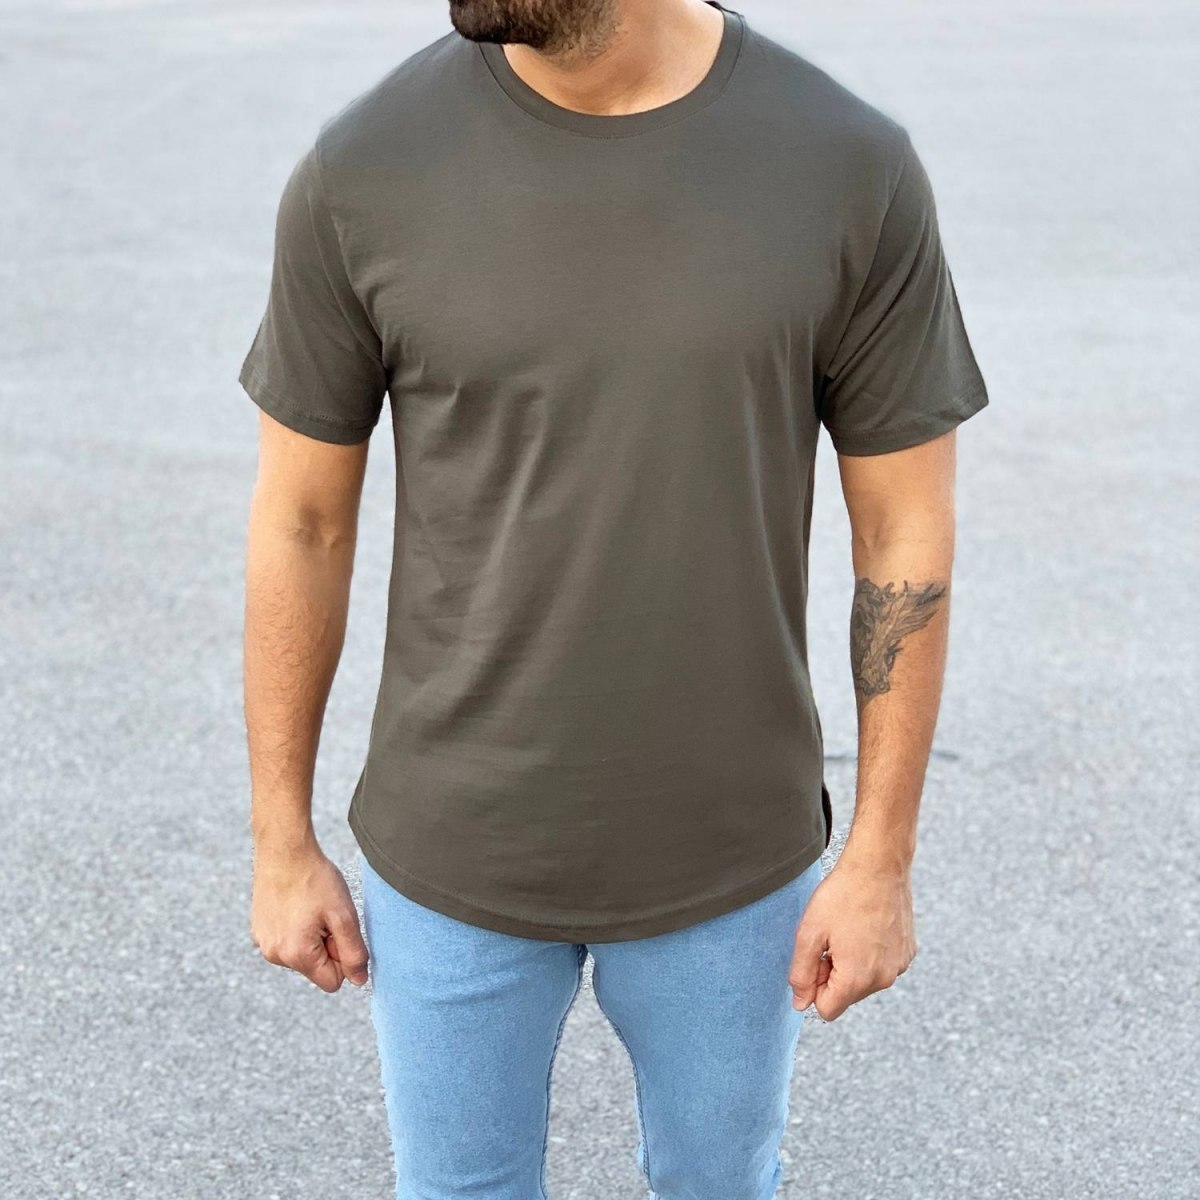 Men's Basic Round Neck T-Shirt In New Khaki